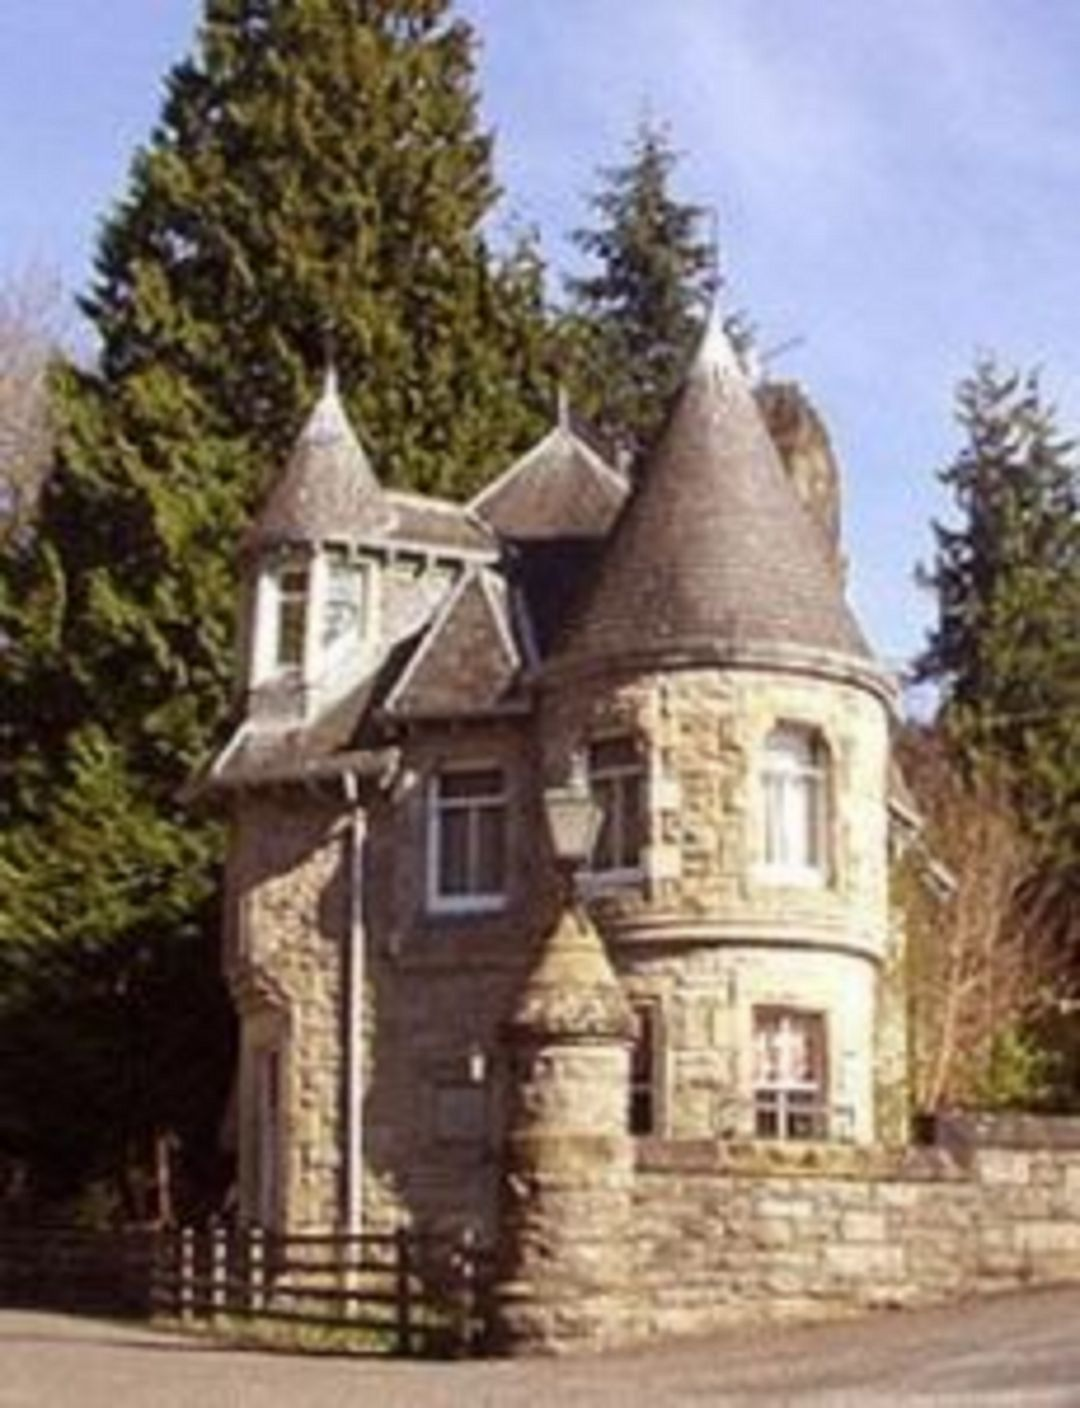 25 Beautiful Stone House Design Ideas On A Budget Storybook Cottage Castle House Fairytale House